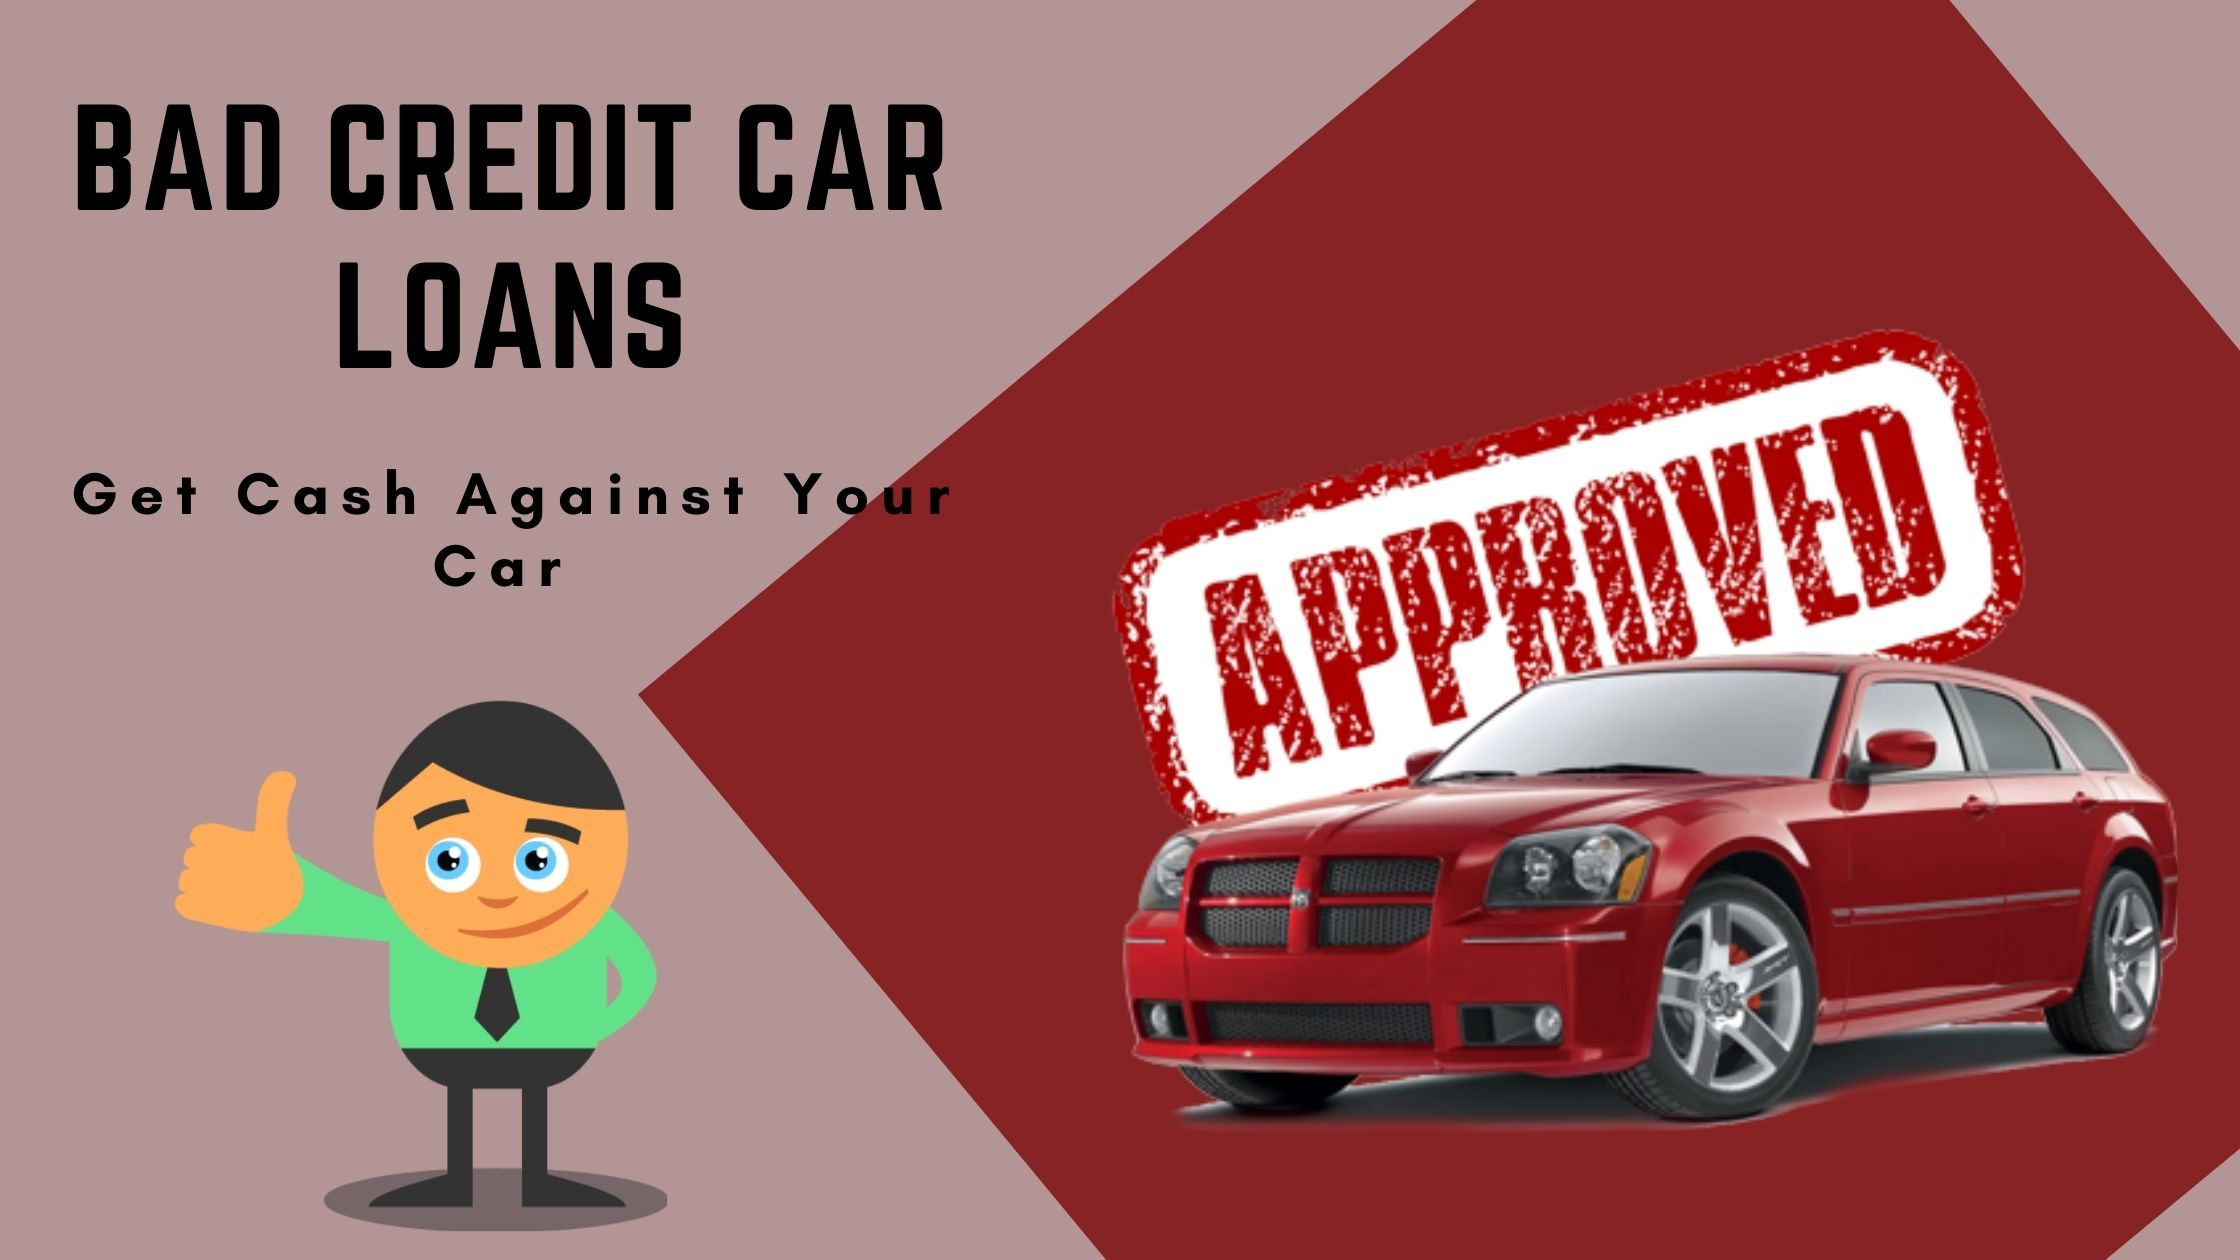 Get Beneficial Bad Credit Car Loans In Barrie Against Car In 2020 Bad Credit Car Loan Car Loans Bad Credit